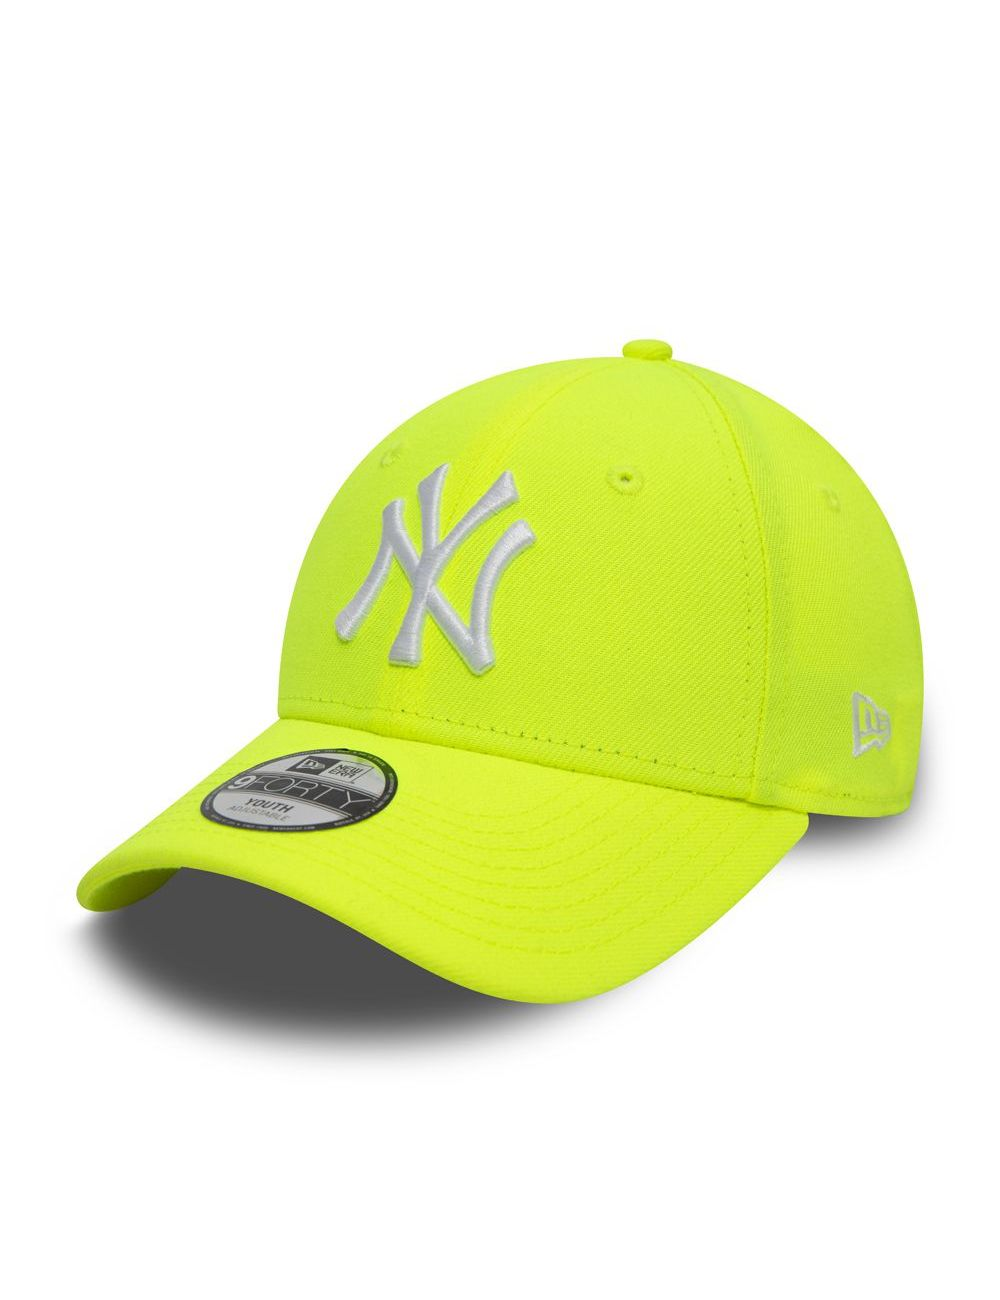 Casquette bébé/toddler 9FORTY NY Yankees